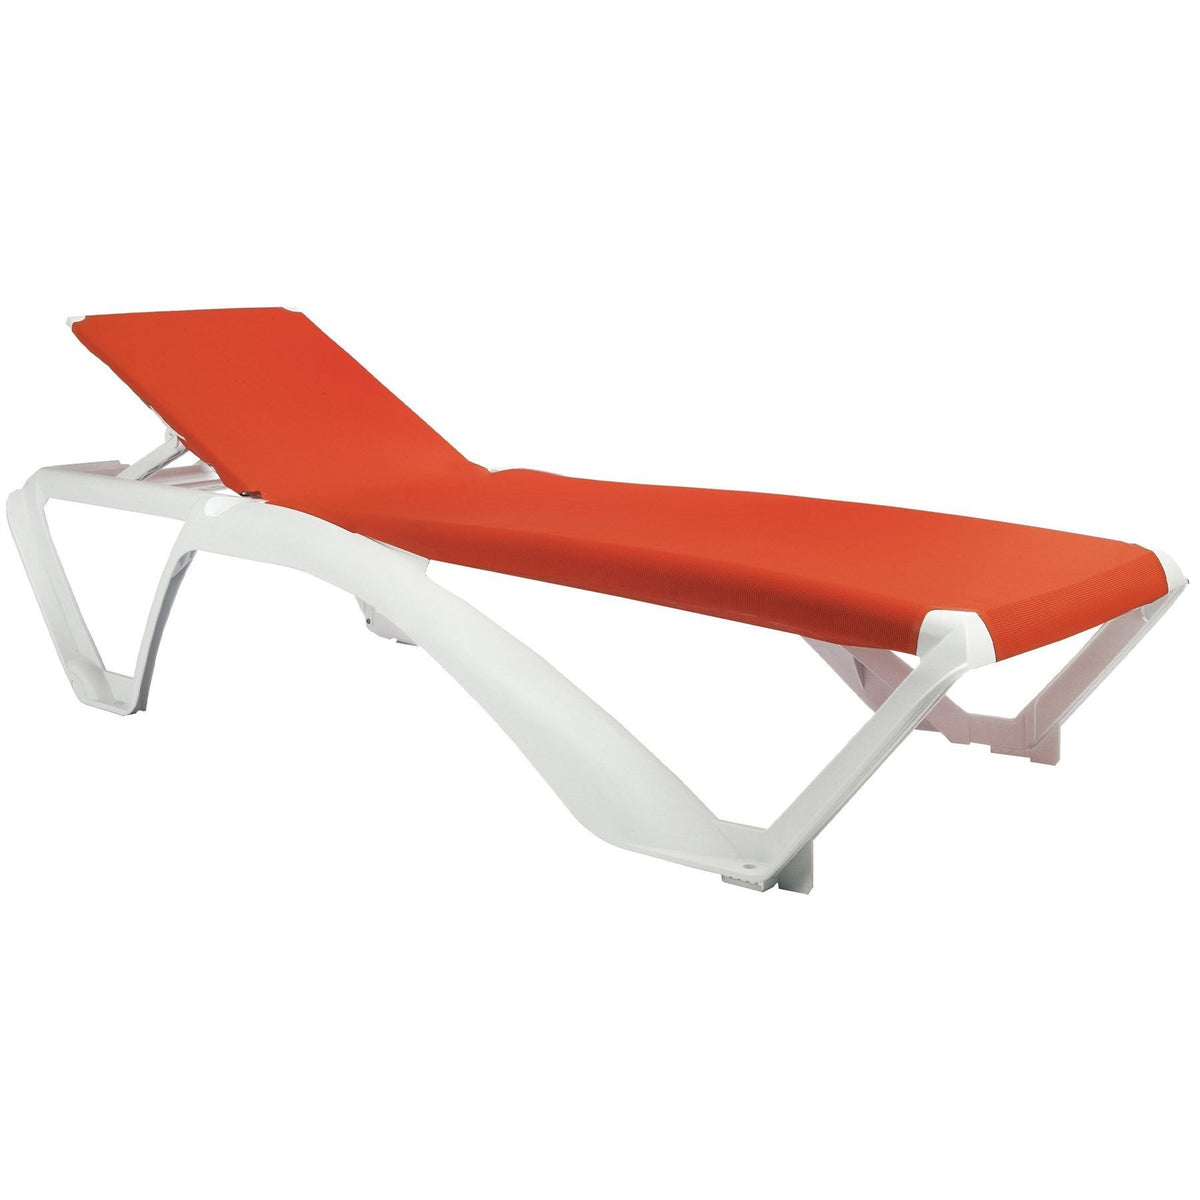 Resol Marina Sun Lounger - White Frame with Orange Canvas Material